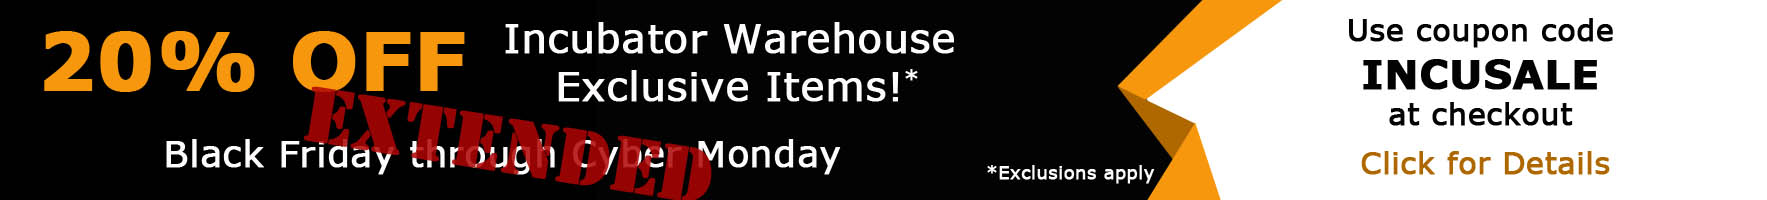 Extended Black Friday Through Cyber Monday Sales Event